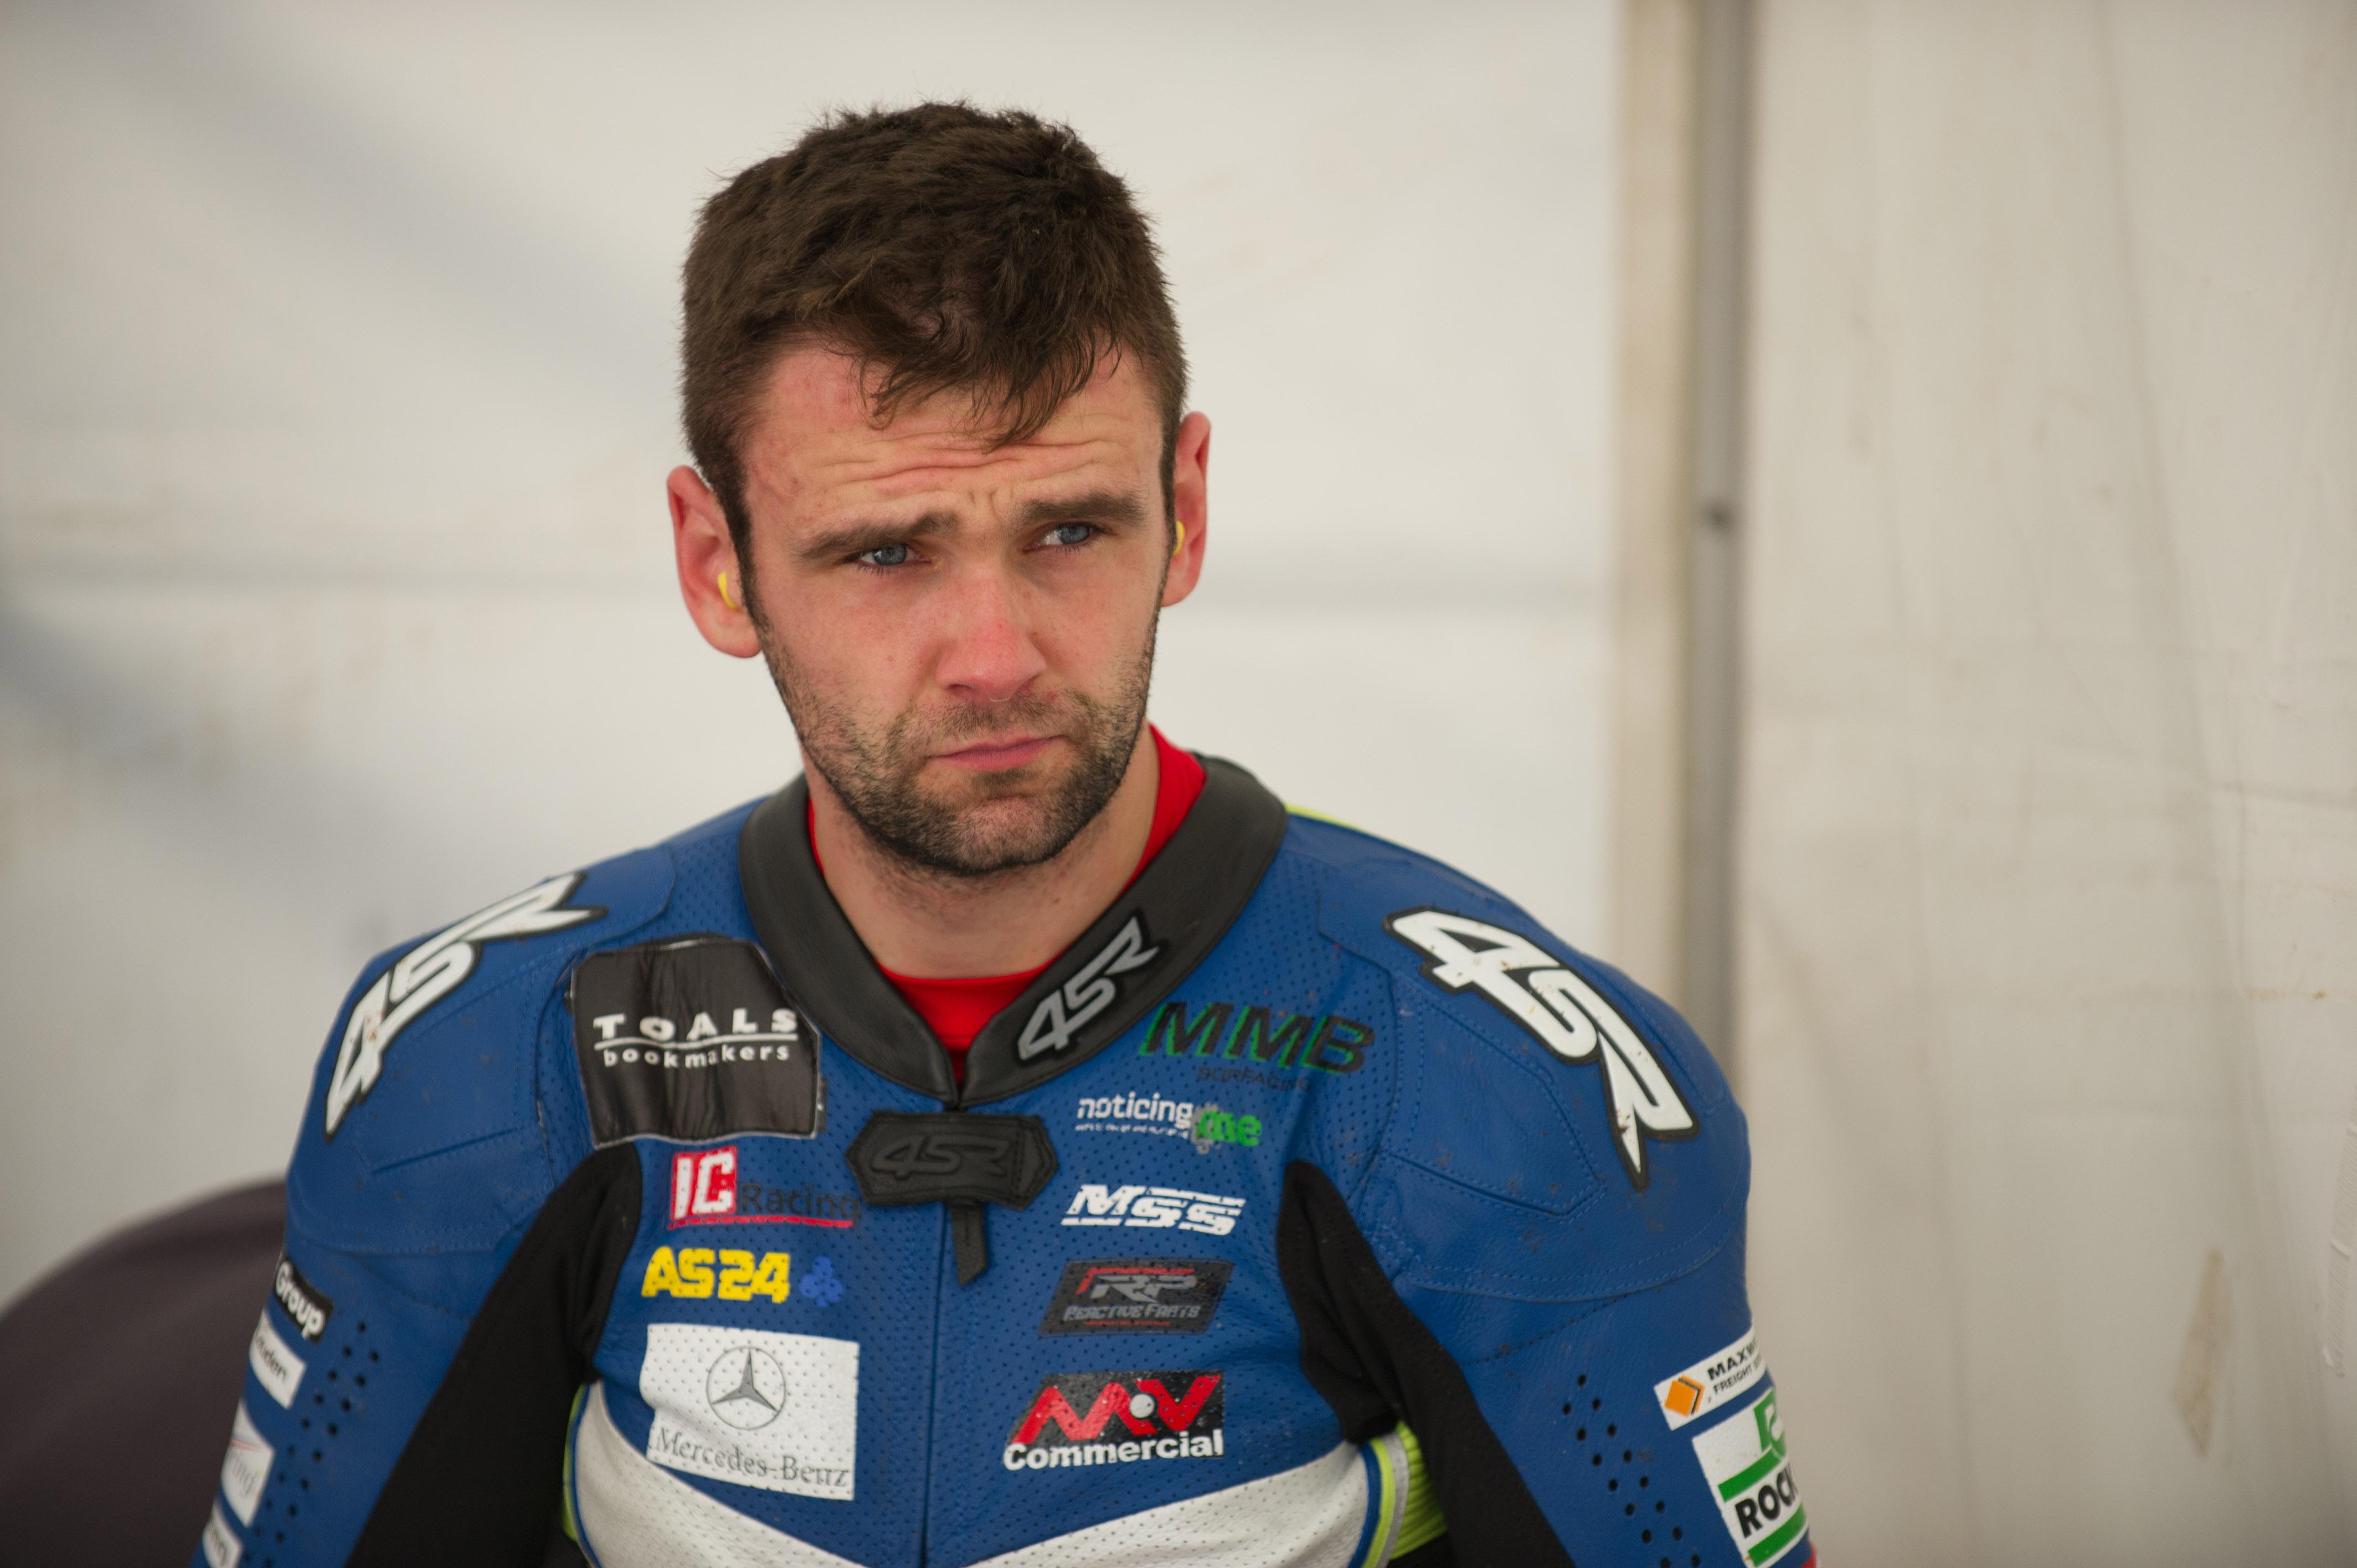 William Dunlop died in a crash today